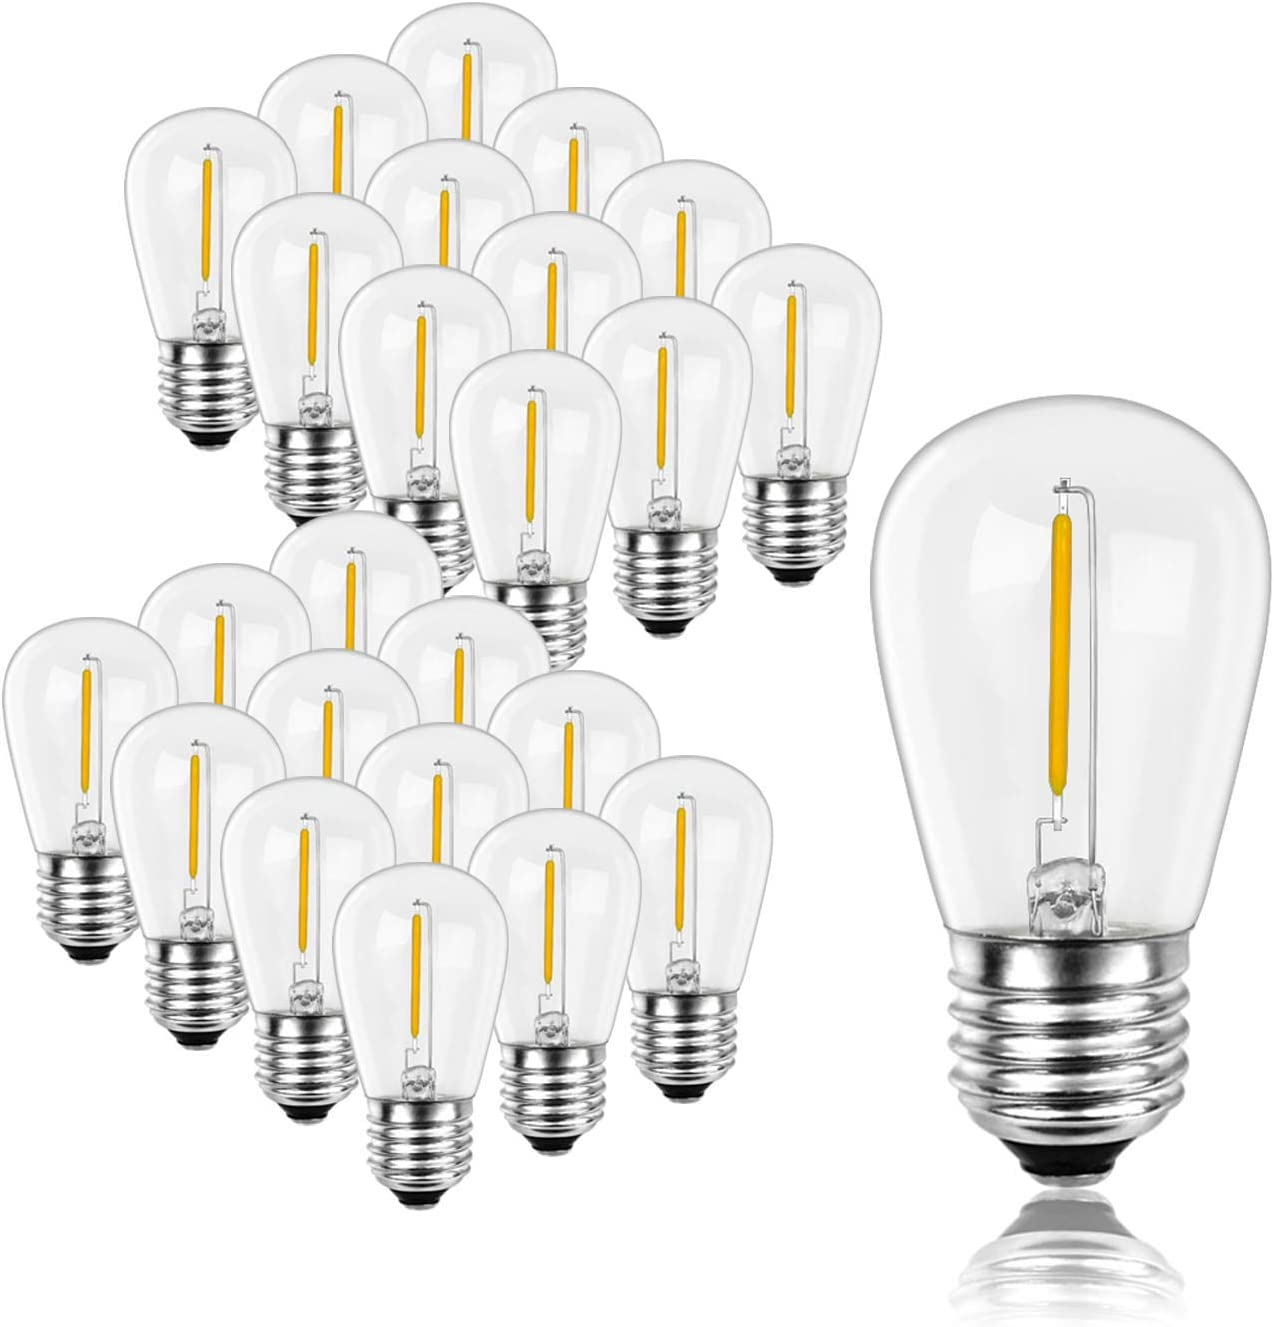 1W S14 LED Light Bulb - Today's only Truly 2200K Dimmable Clear Great interest Warm E2 Glass